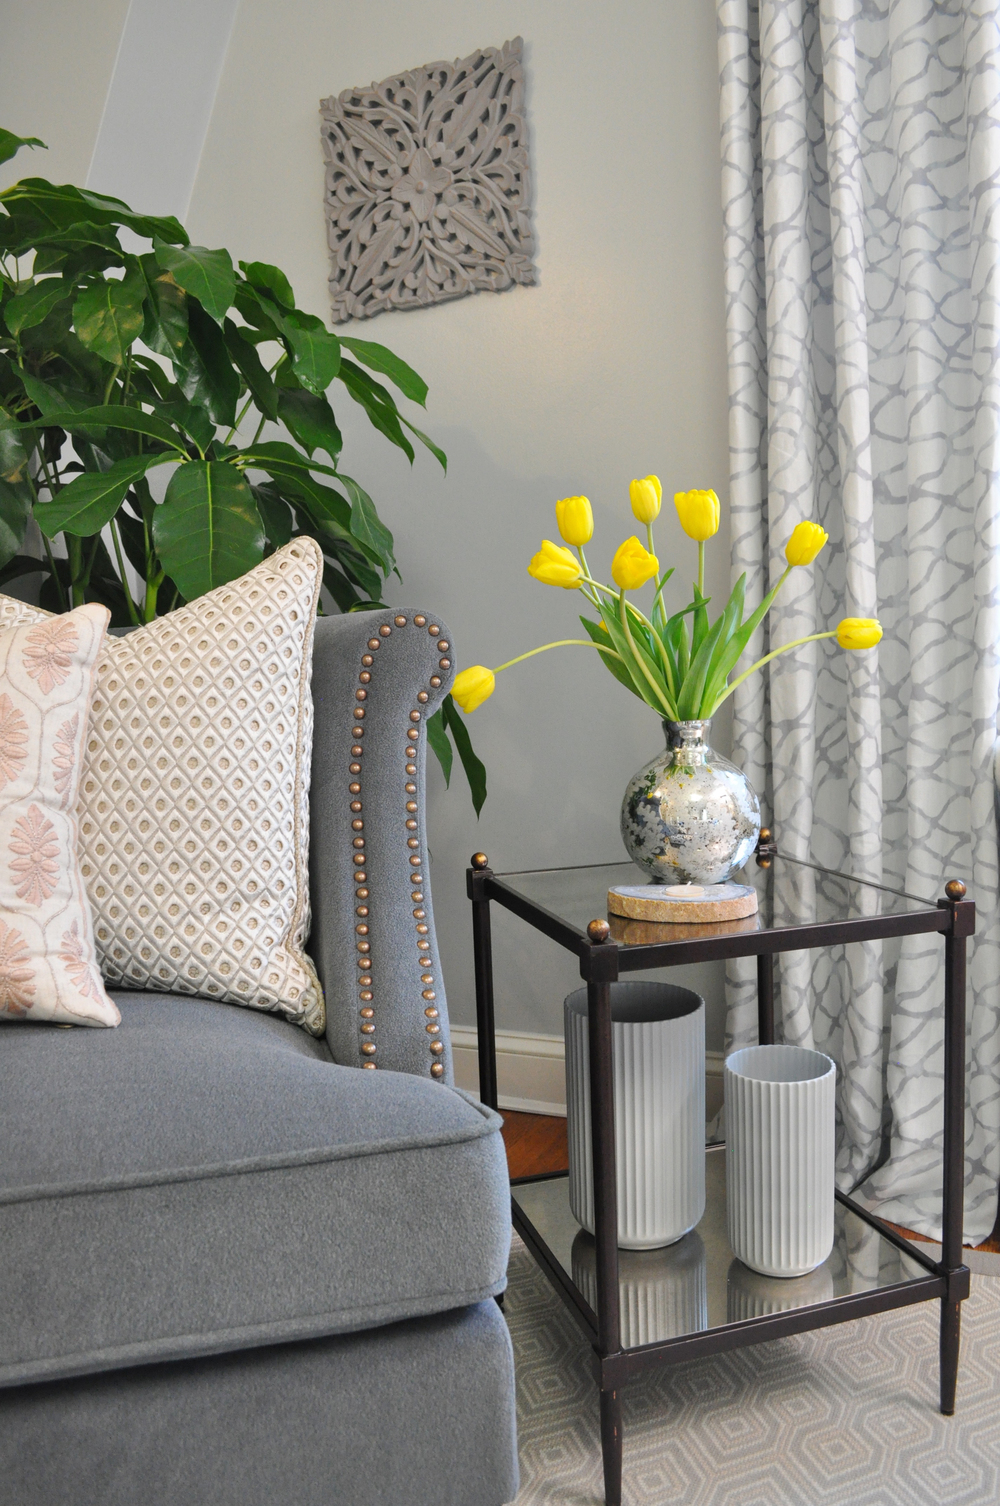 Kim Mitchell Design Lead_HGTV_Buying and Selling with The Property Brothers_Season 5_Episode 8_Bedroom_Side Table_Chair_Tulips_Kontrast Vases_8_31_2016.jpg